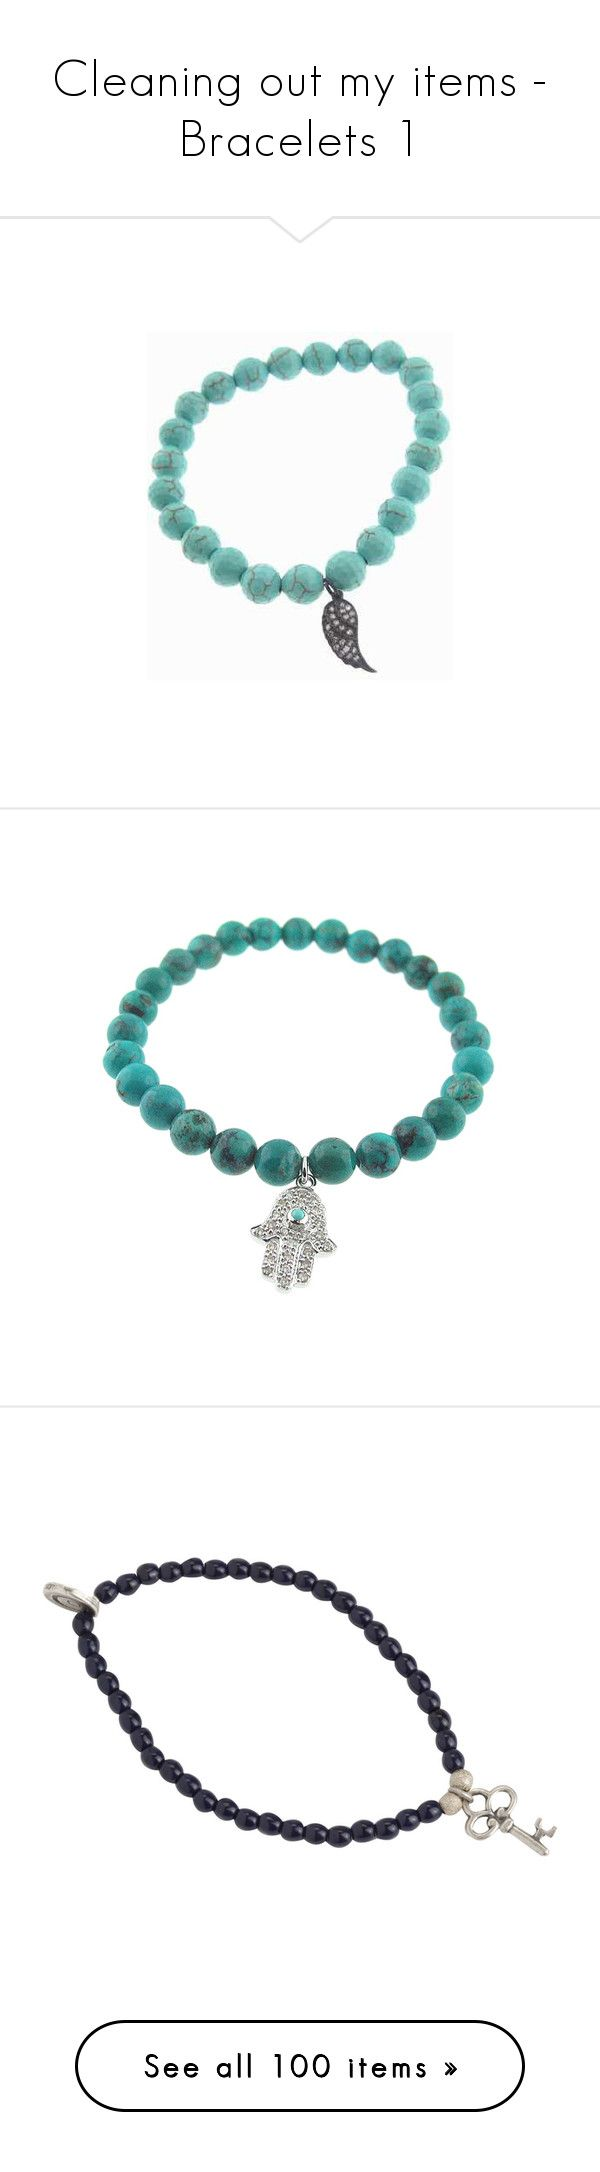 """""""Cleaning out my items - Bracelets 1"""" by firewitch23 ❤ liked on Polyvore featuring jewelry, bracelets, turquoise bangle, oxidized jewelry, diamond jewellery, oxidized jewellery, stackers jewelry, green turquoise jewelry, hamsa hand jewelry and white gold jewelry"""